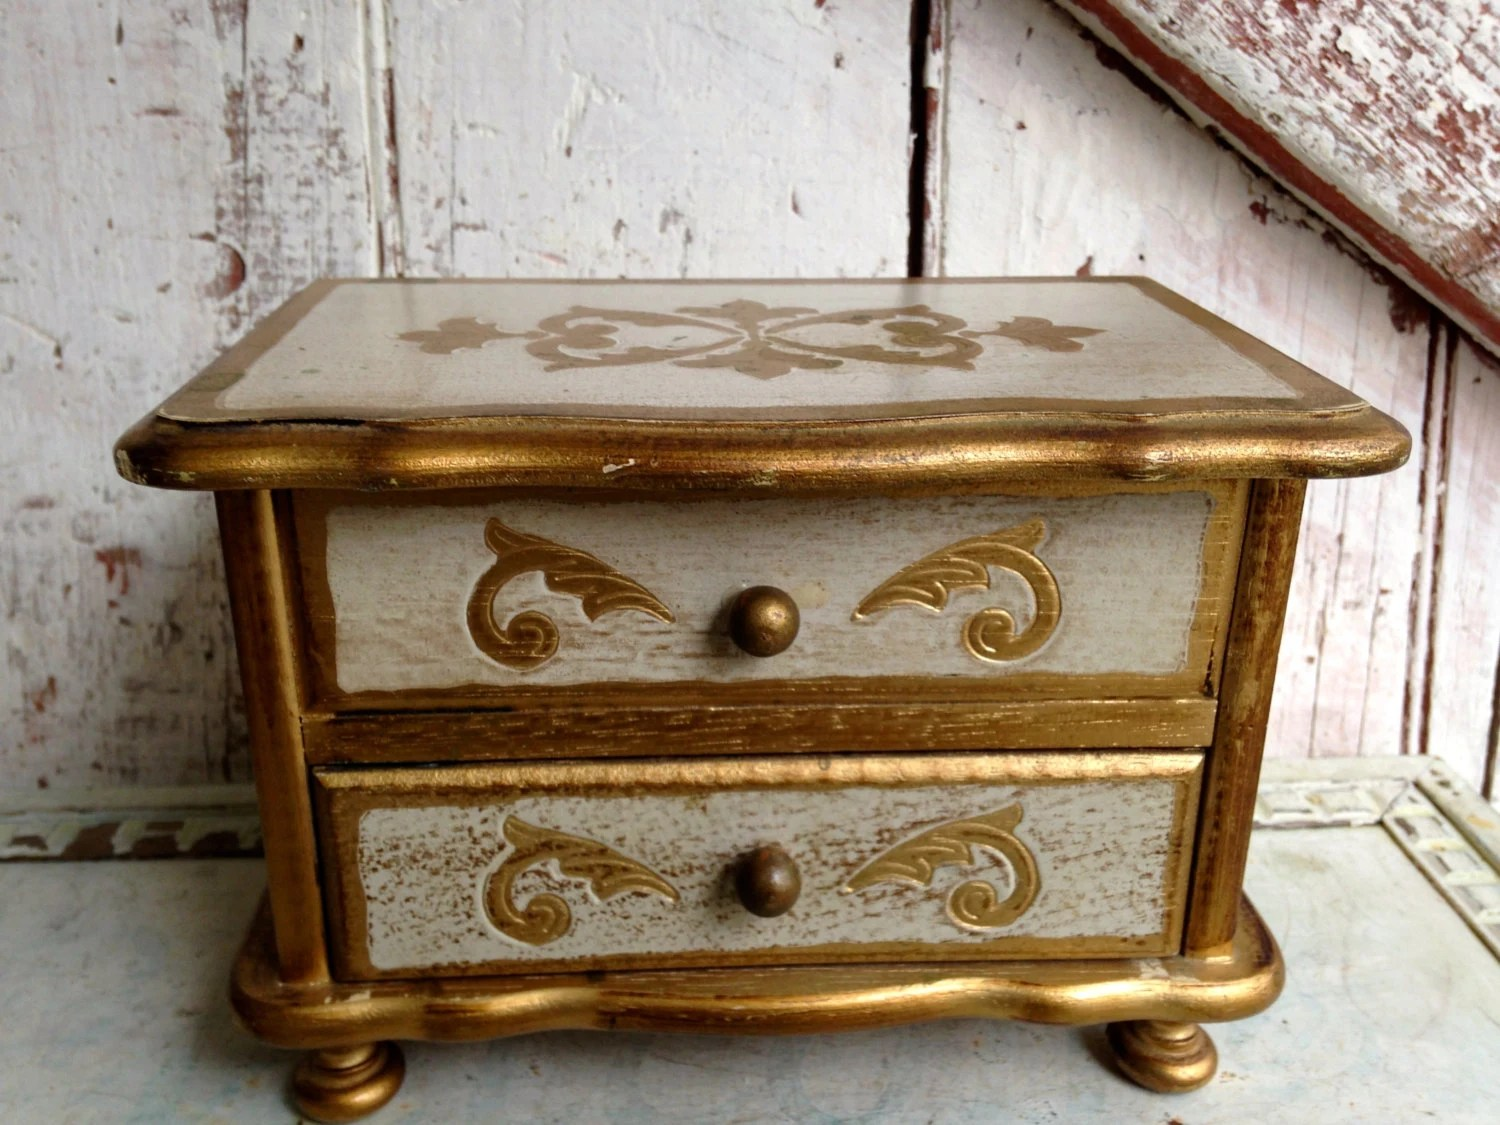 Vintage Style Jewellery Box Vintage Jewelry Box Chest Florentine Style Gold Gilt And